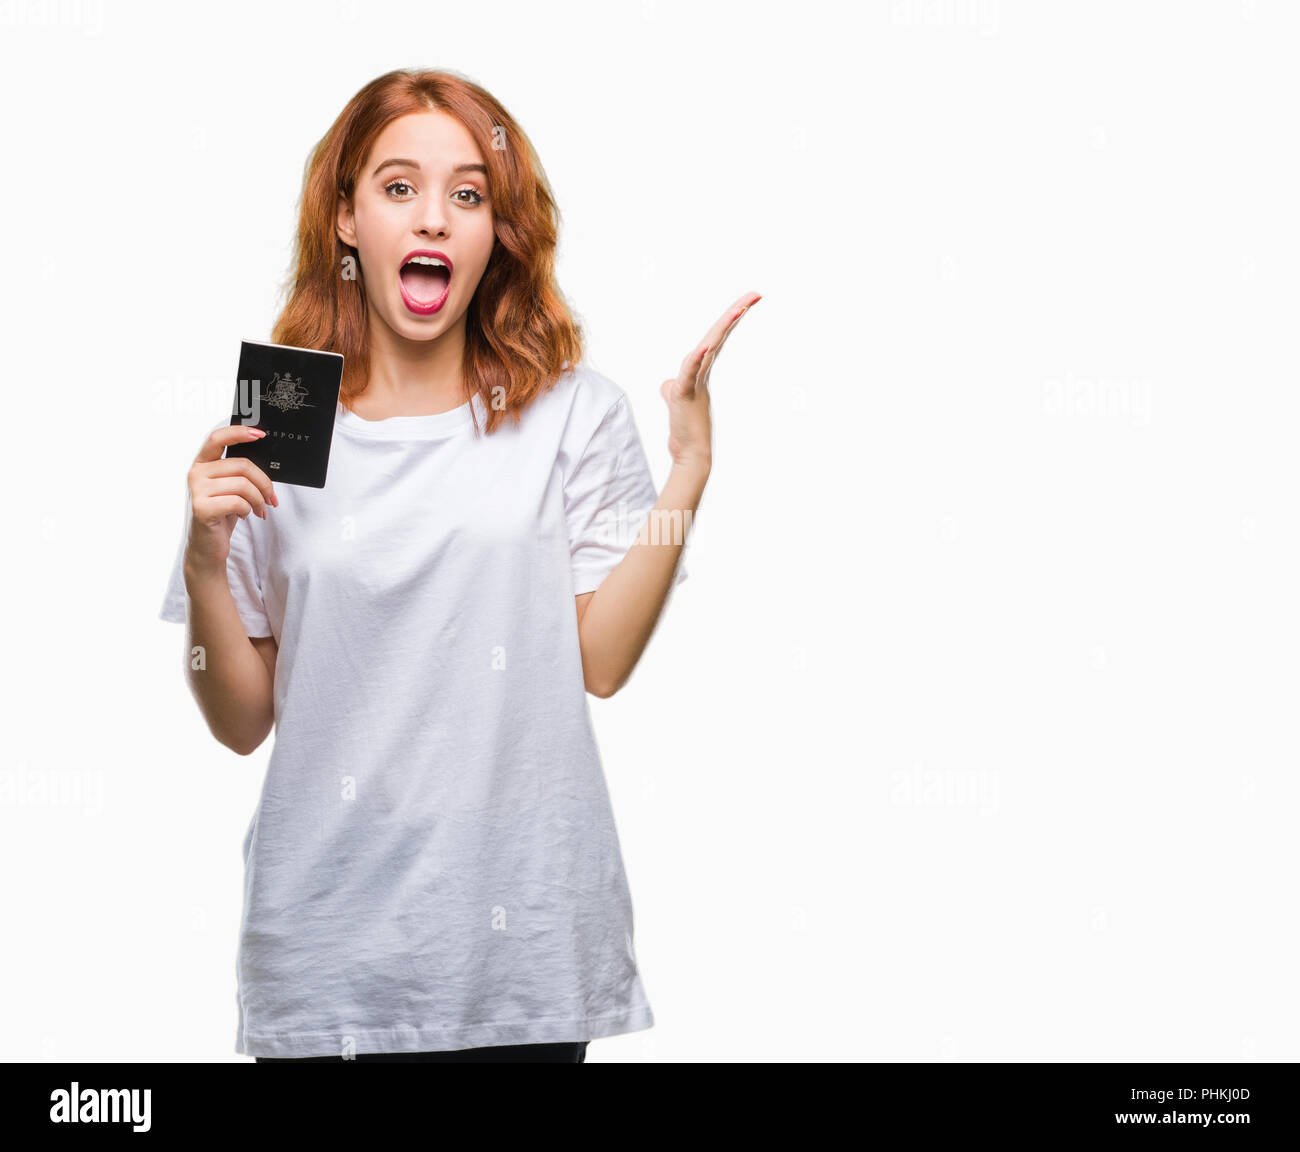 Young beautiful woman holding passport of australia over isolated background very happy and excited, winner expression celebrating victory screaming w - Stock Image